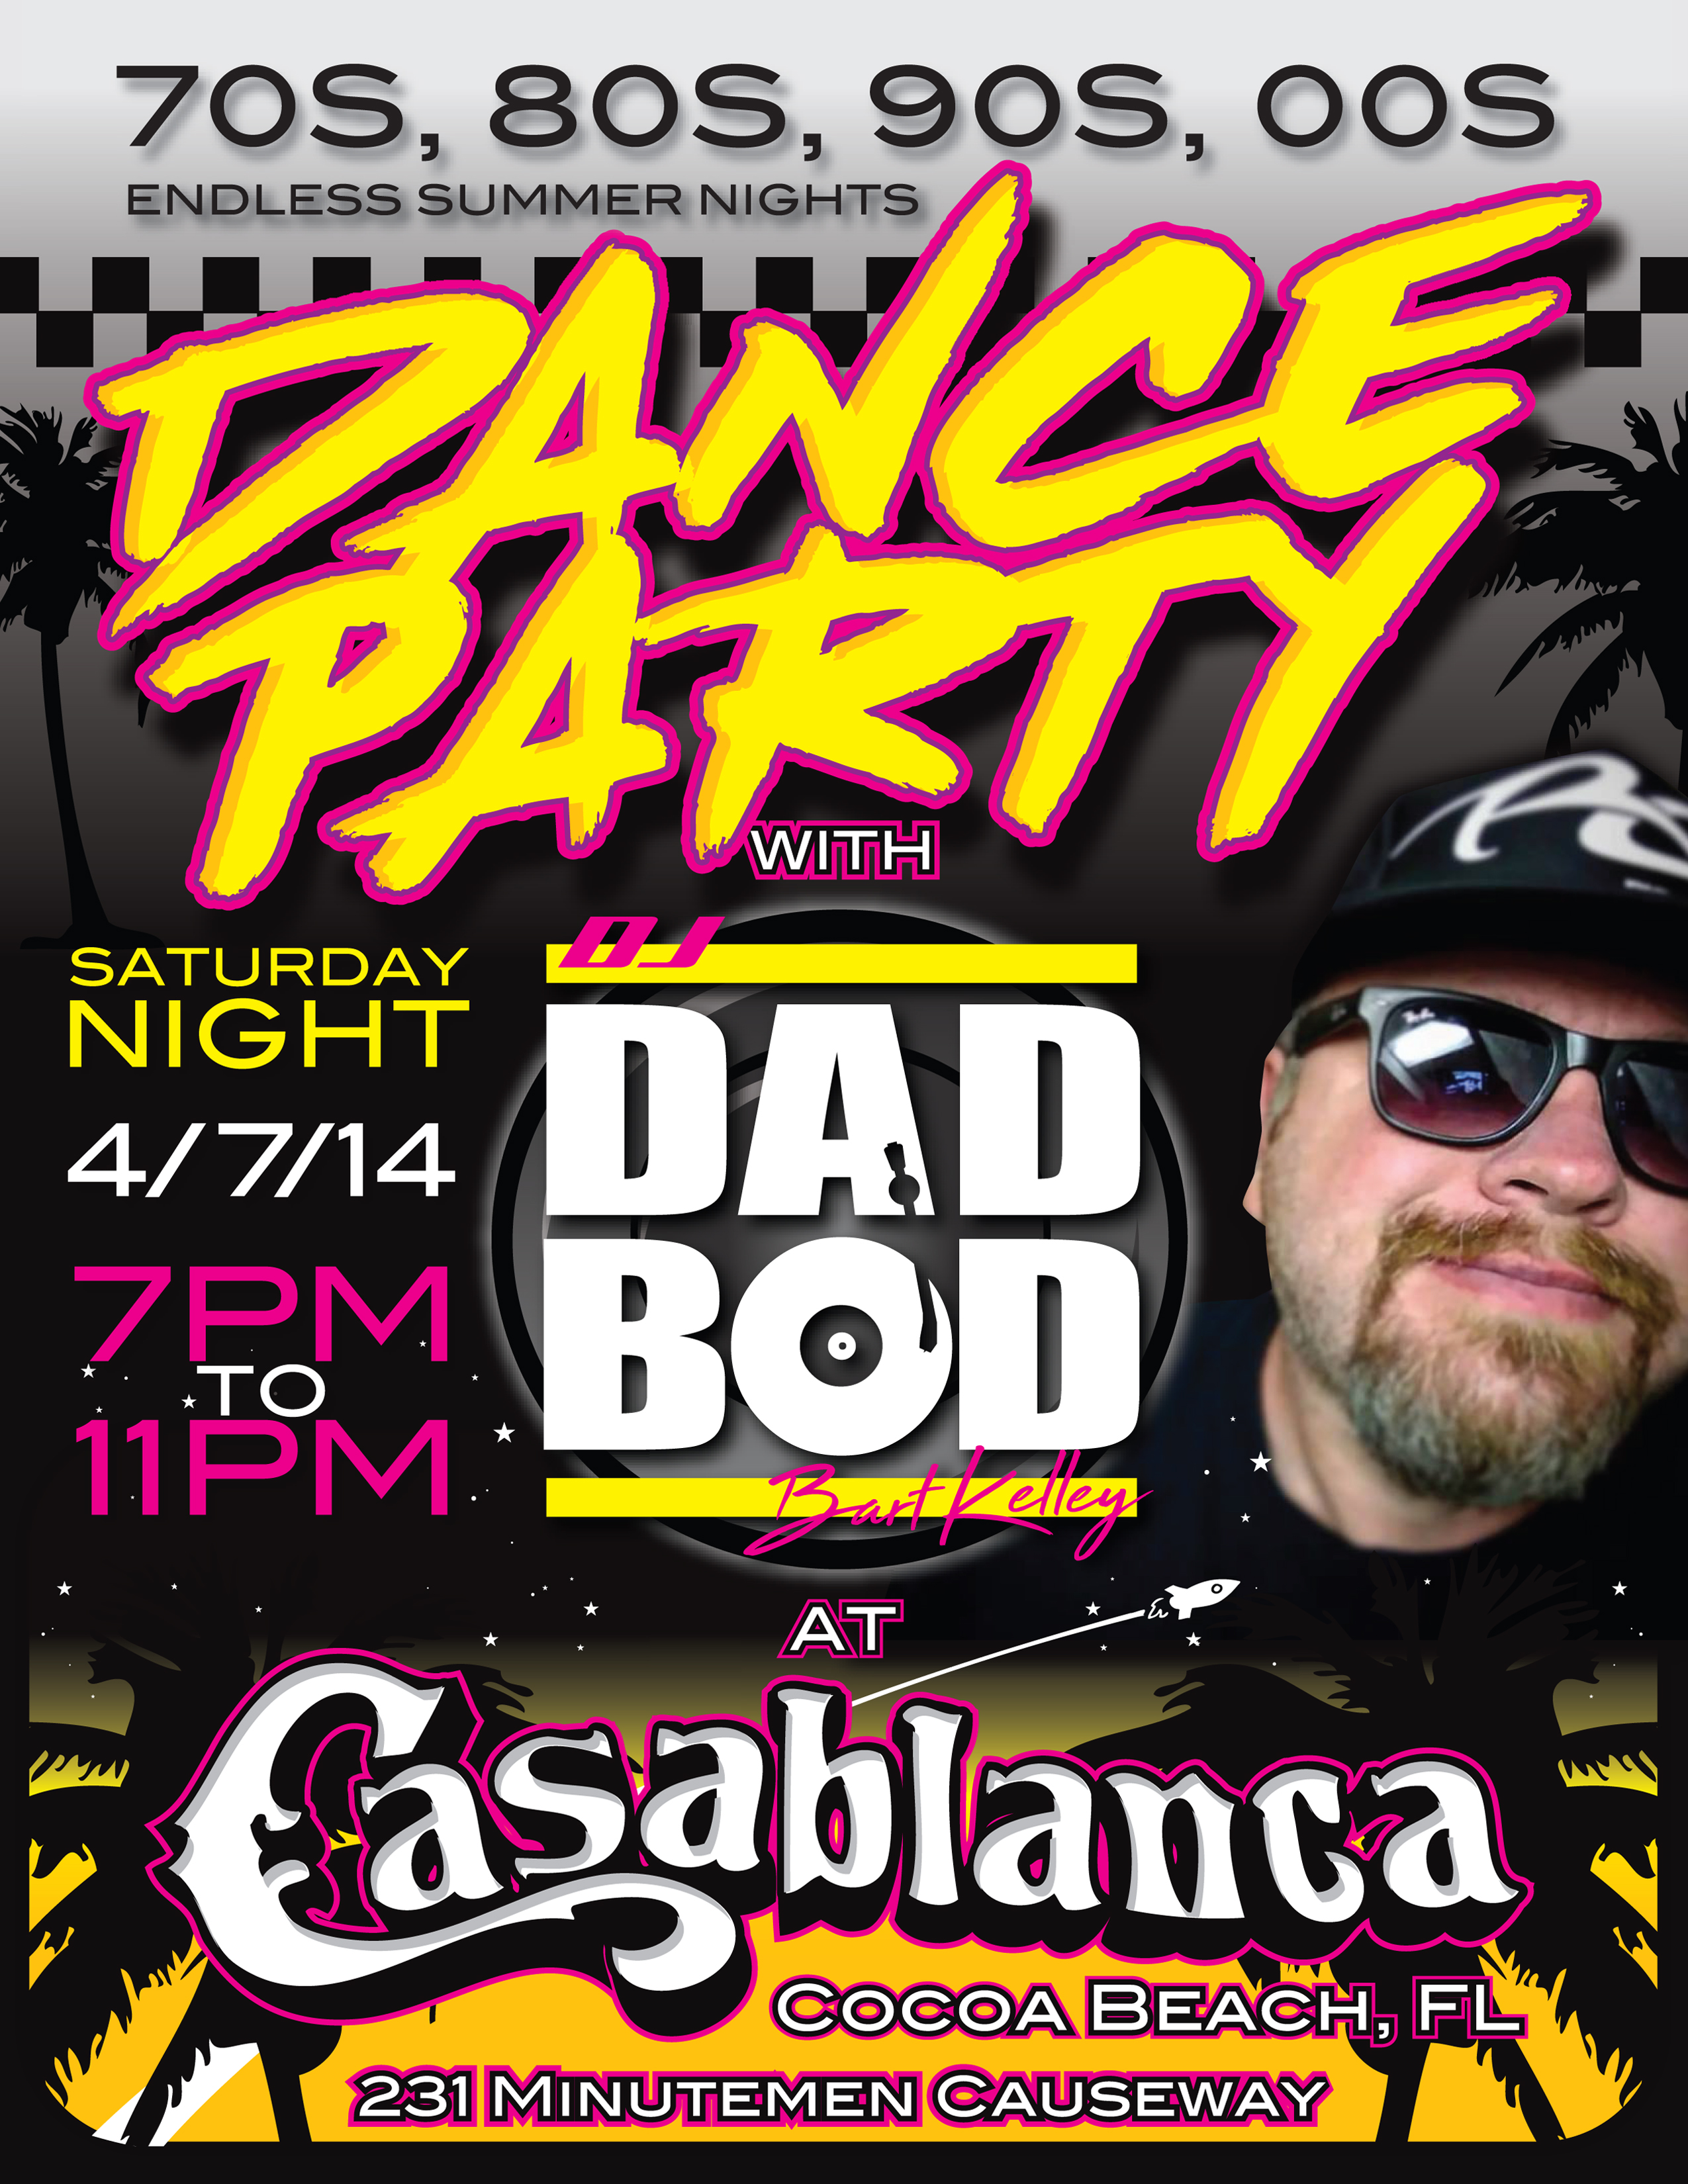 Dance Party with DJ Dad Bod at Casablanca April 7th